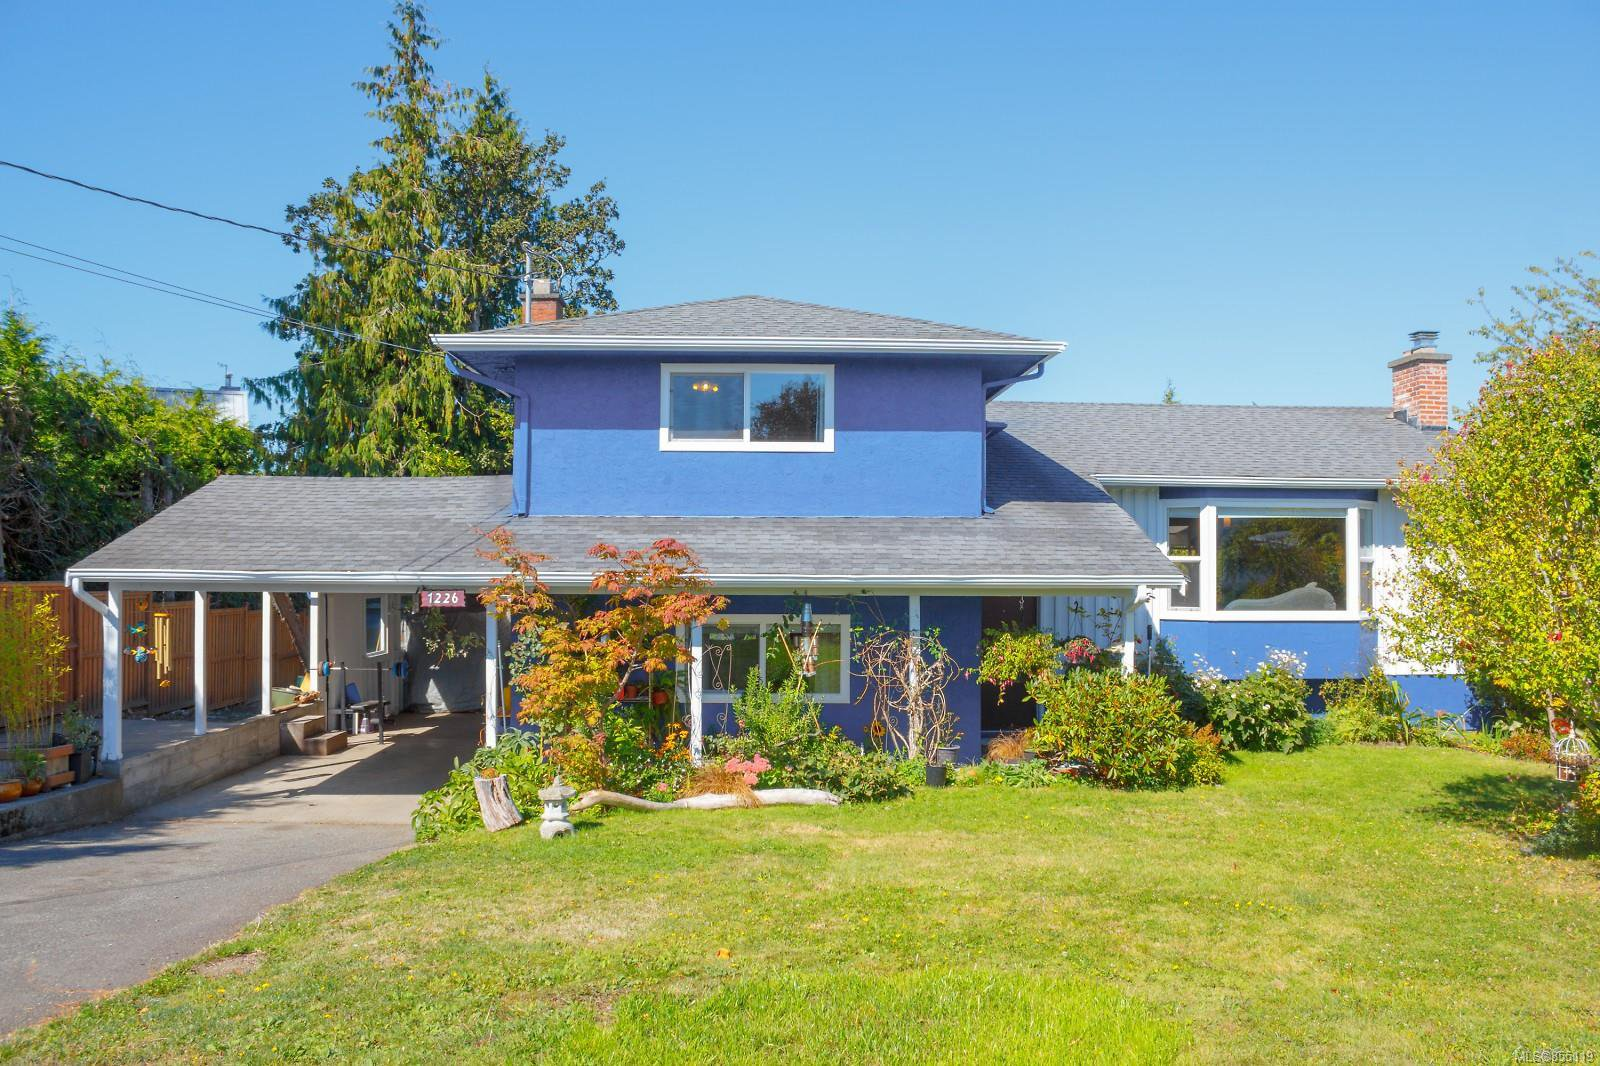 Main Photo: 1226 Wychbury Ave in : Es Saxe Point Single Family Detached for sale (Esquimalt)  : MLS®# 855119